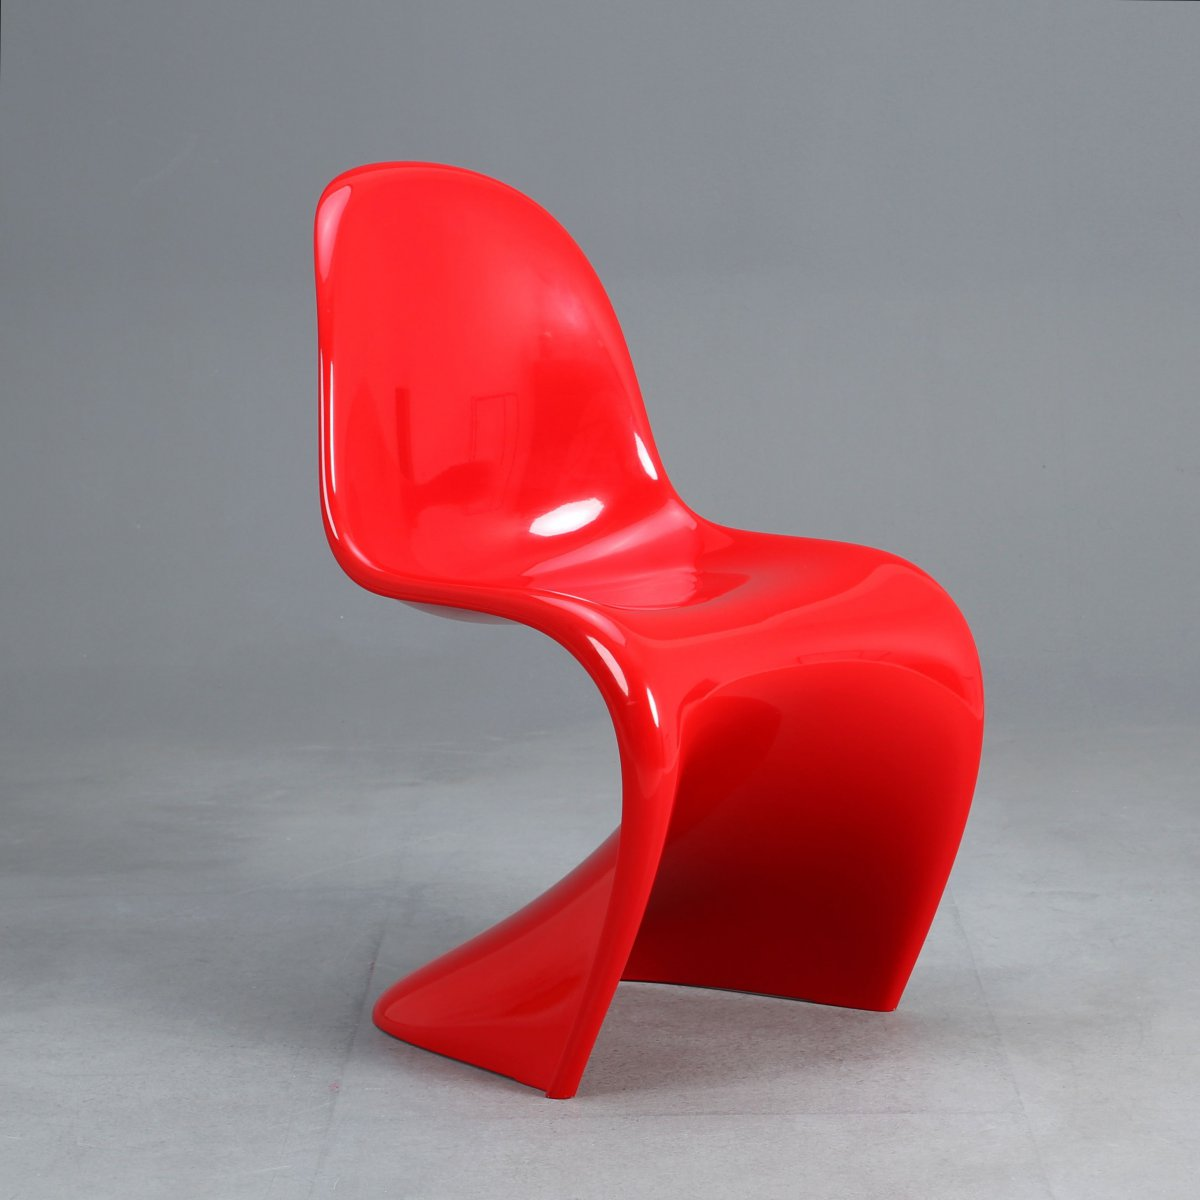 original vitra panton chair classic 2013 stuhl aus hartschaum rot hochglanz ebay. Black Bedroom Furniture Sets. Home Design Ideas